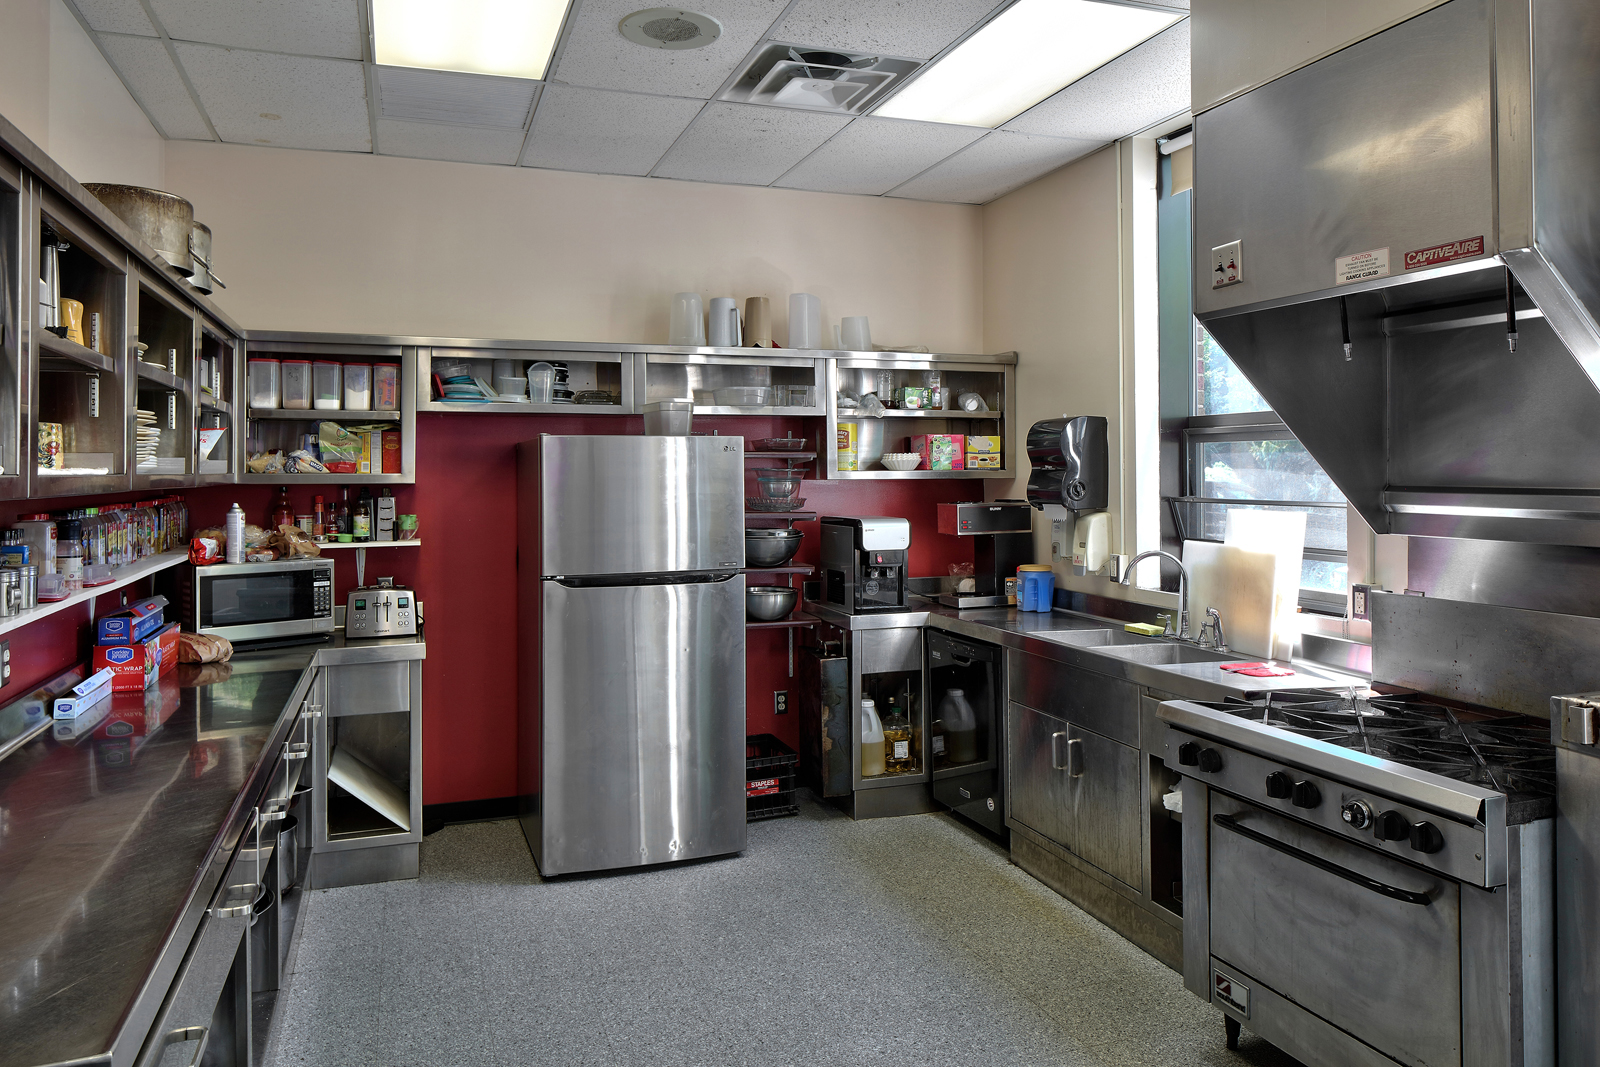 south-ave-fs-kitchen.jpg